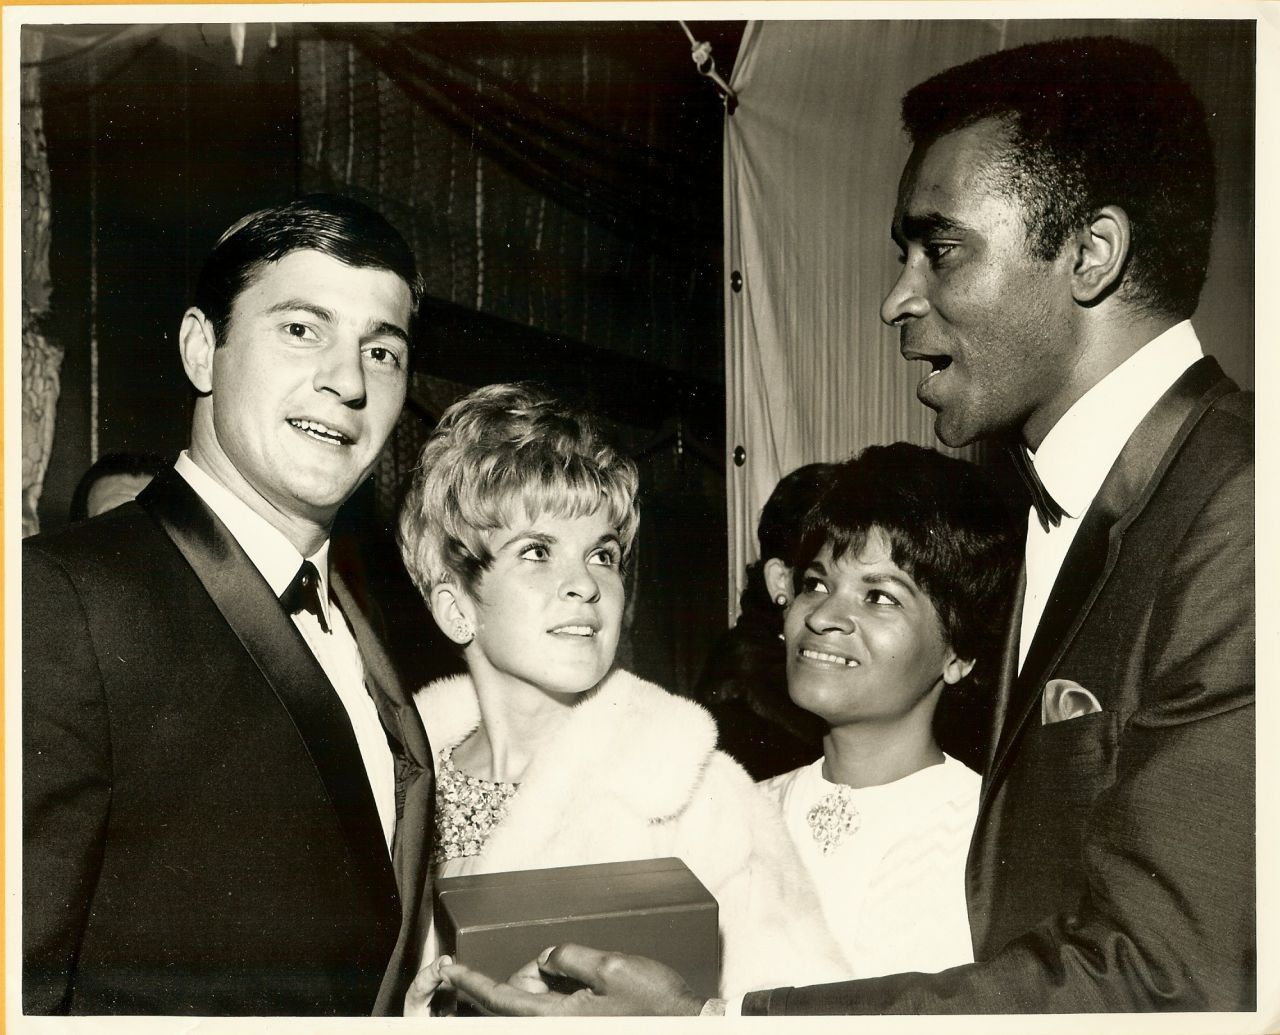 Greg MORRIS Wife UNKNOWN Others CANDID Org Photo